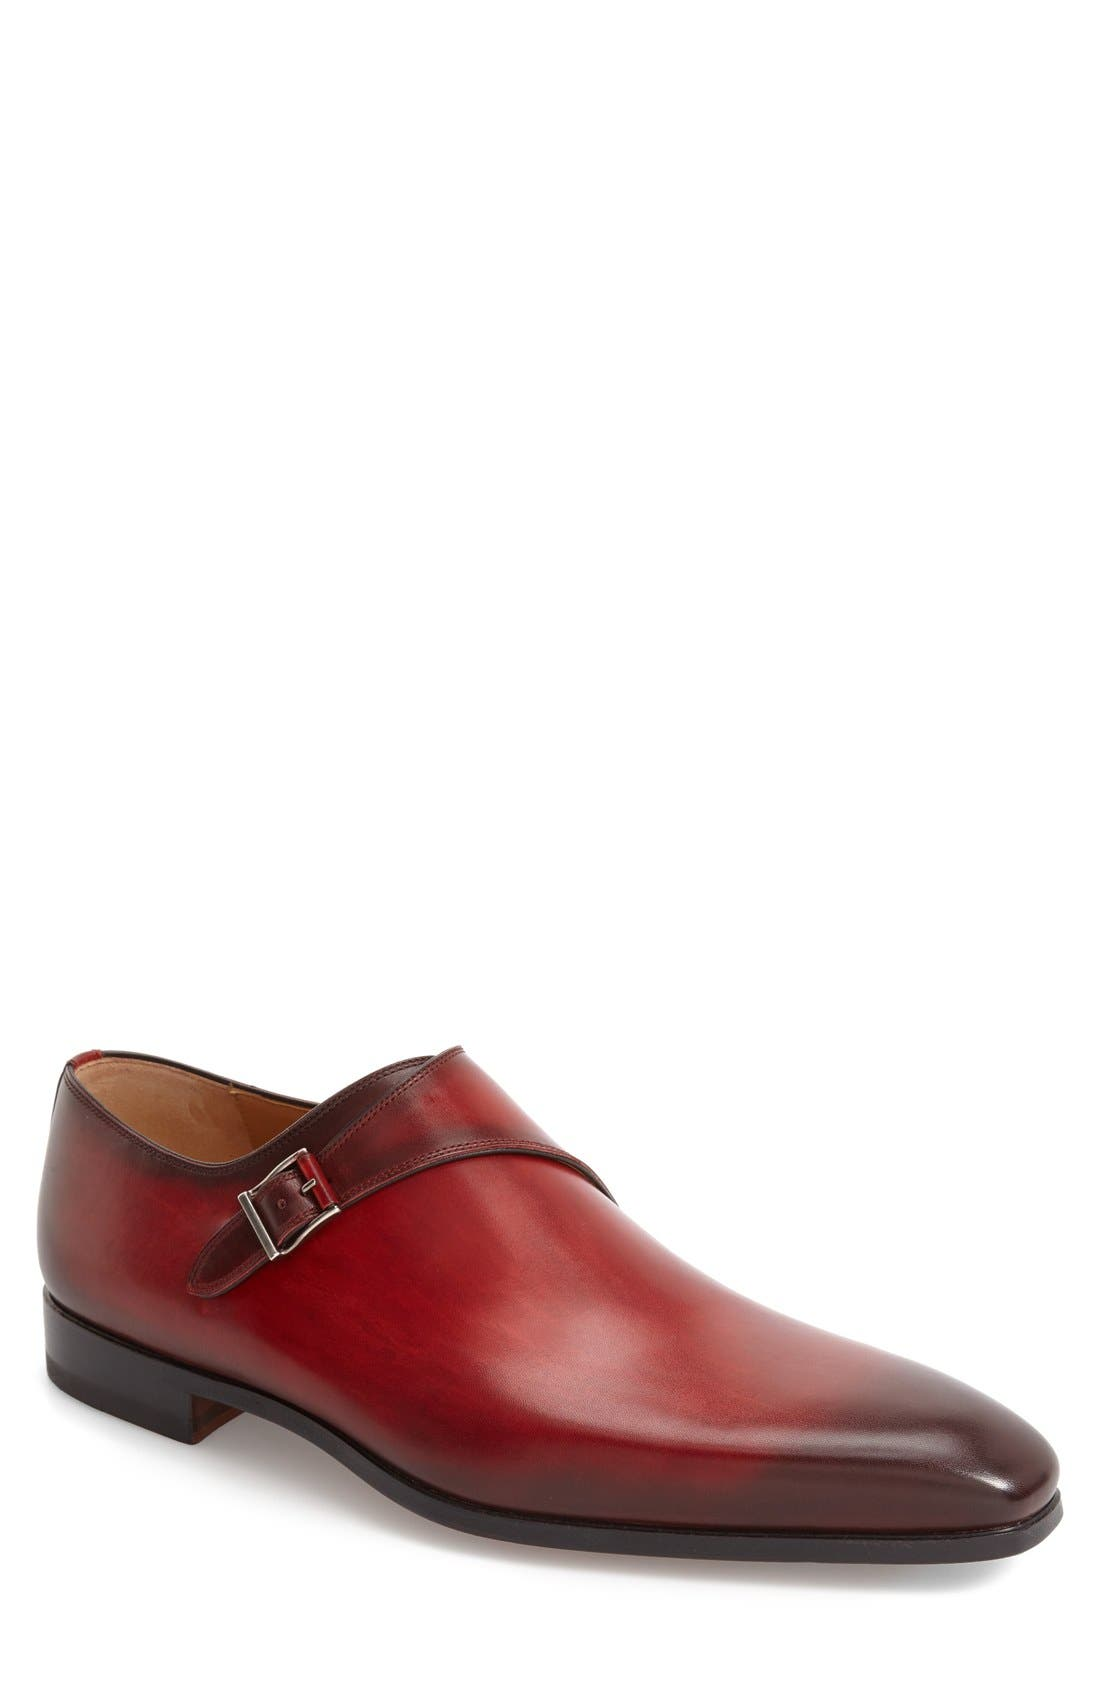 Efren Monk Strap Shoe,                         Main,                         color, 600